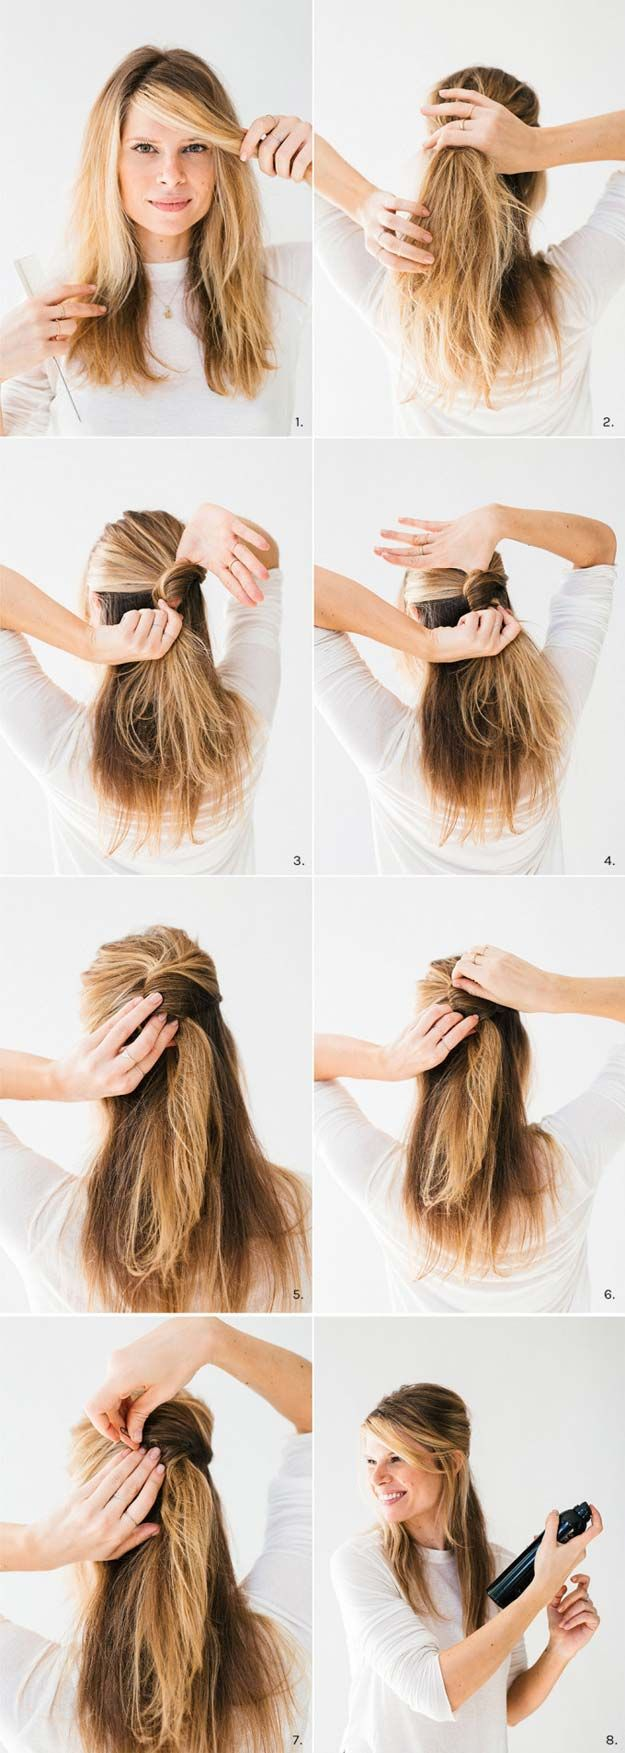 Best Hairstyles For Your 30s -Quick Hair Tutorial - Hair Dos And Don'ts For Your 30s, With The Best Haircuts For Women Over 30, Including Short Hairstyle Ideas, Flattering Haircuts For Medium Length Hair, And Tips And Tricks For Taming Long Hair In Your 30s. Low Maintenance Hair Styles And Looks For A 30 Year Old Woman. Simple Step By Step Tutorials And Tips For Hair Styles You Can Use To Look Younger And Feel Younger In Your 30s. Hair styles For Curly Hair And Straight Hair Can Be Easy If…